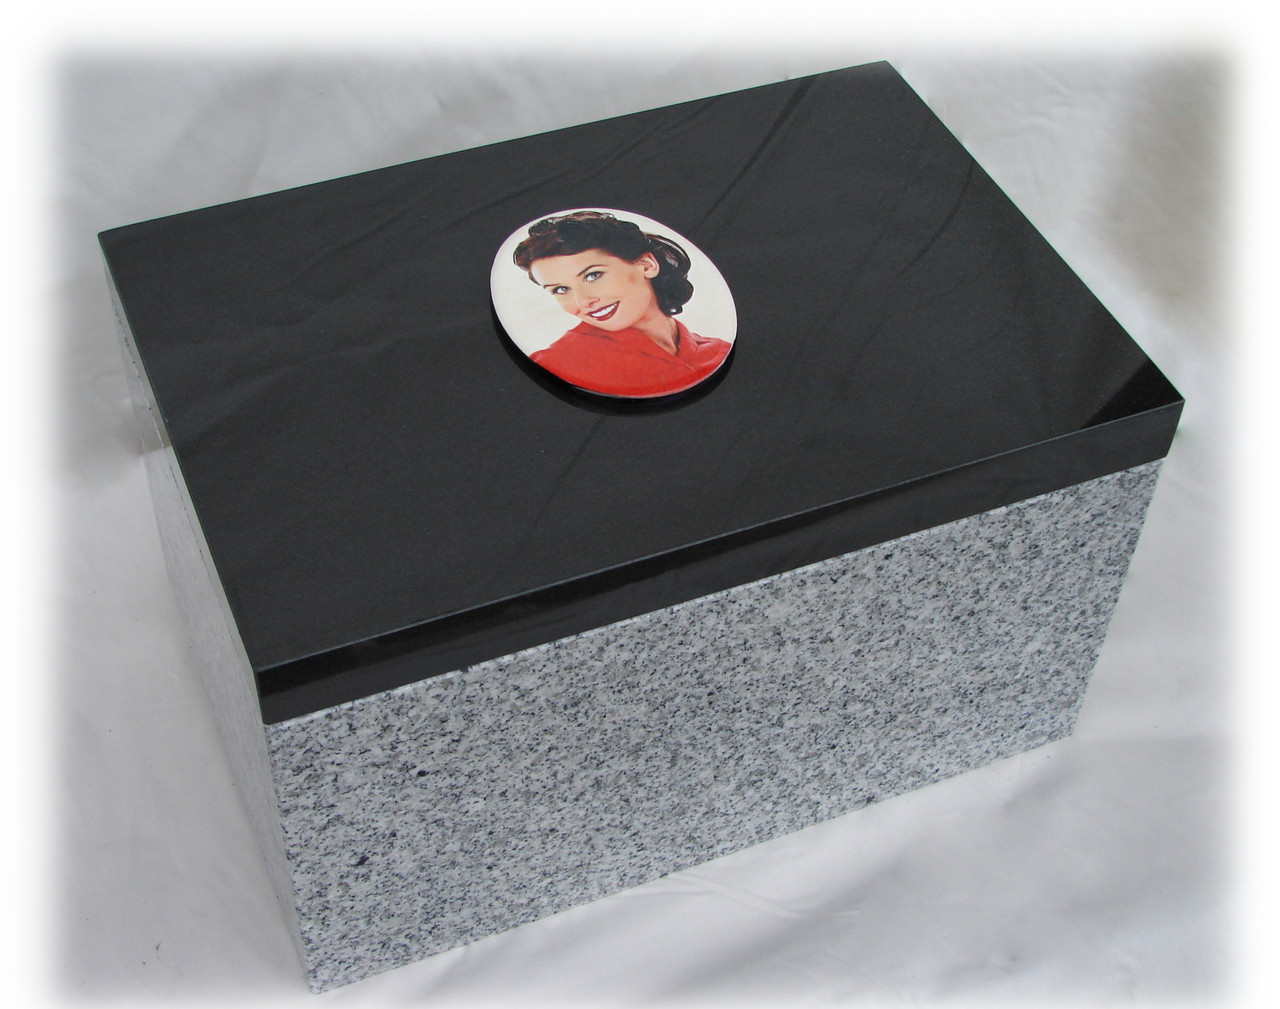 """China White Granite Base Dimensions, 18"""" long x 12"""" wide x 6"""" tall with cut out 5"""" deep, ~1"""" walls. Top Cove, LaserGrade MB Black Granite,  18"""" x 12"""" x 1"""": Holds a live weight of 750 pounds"""